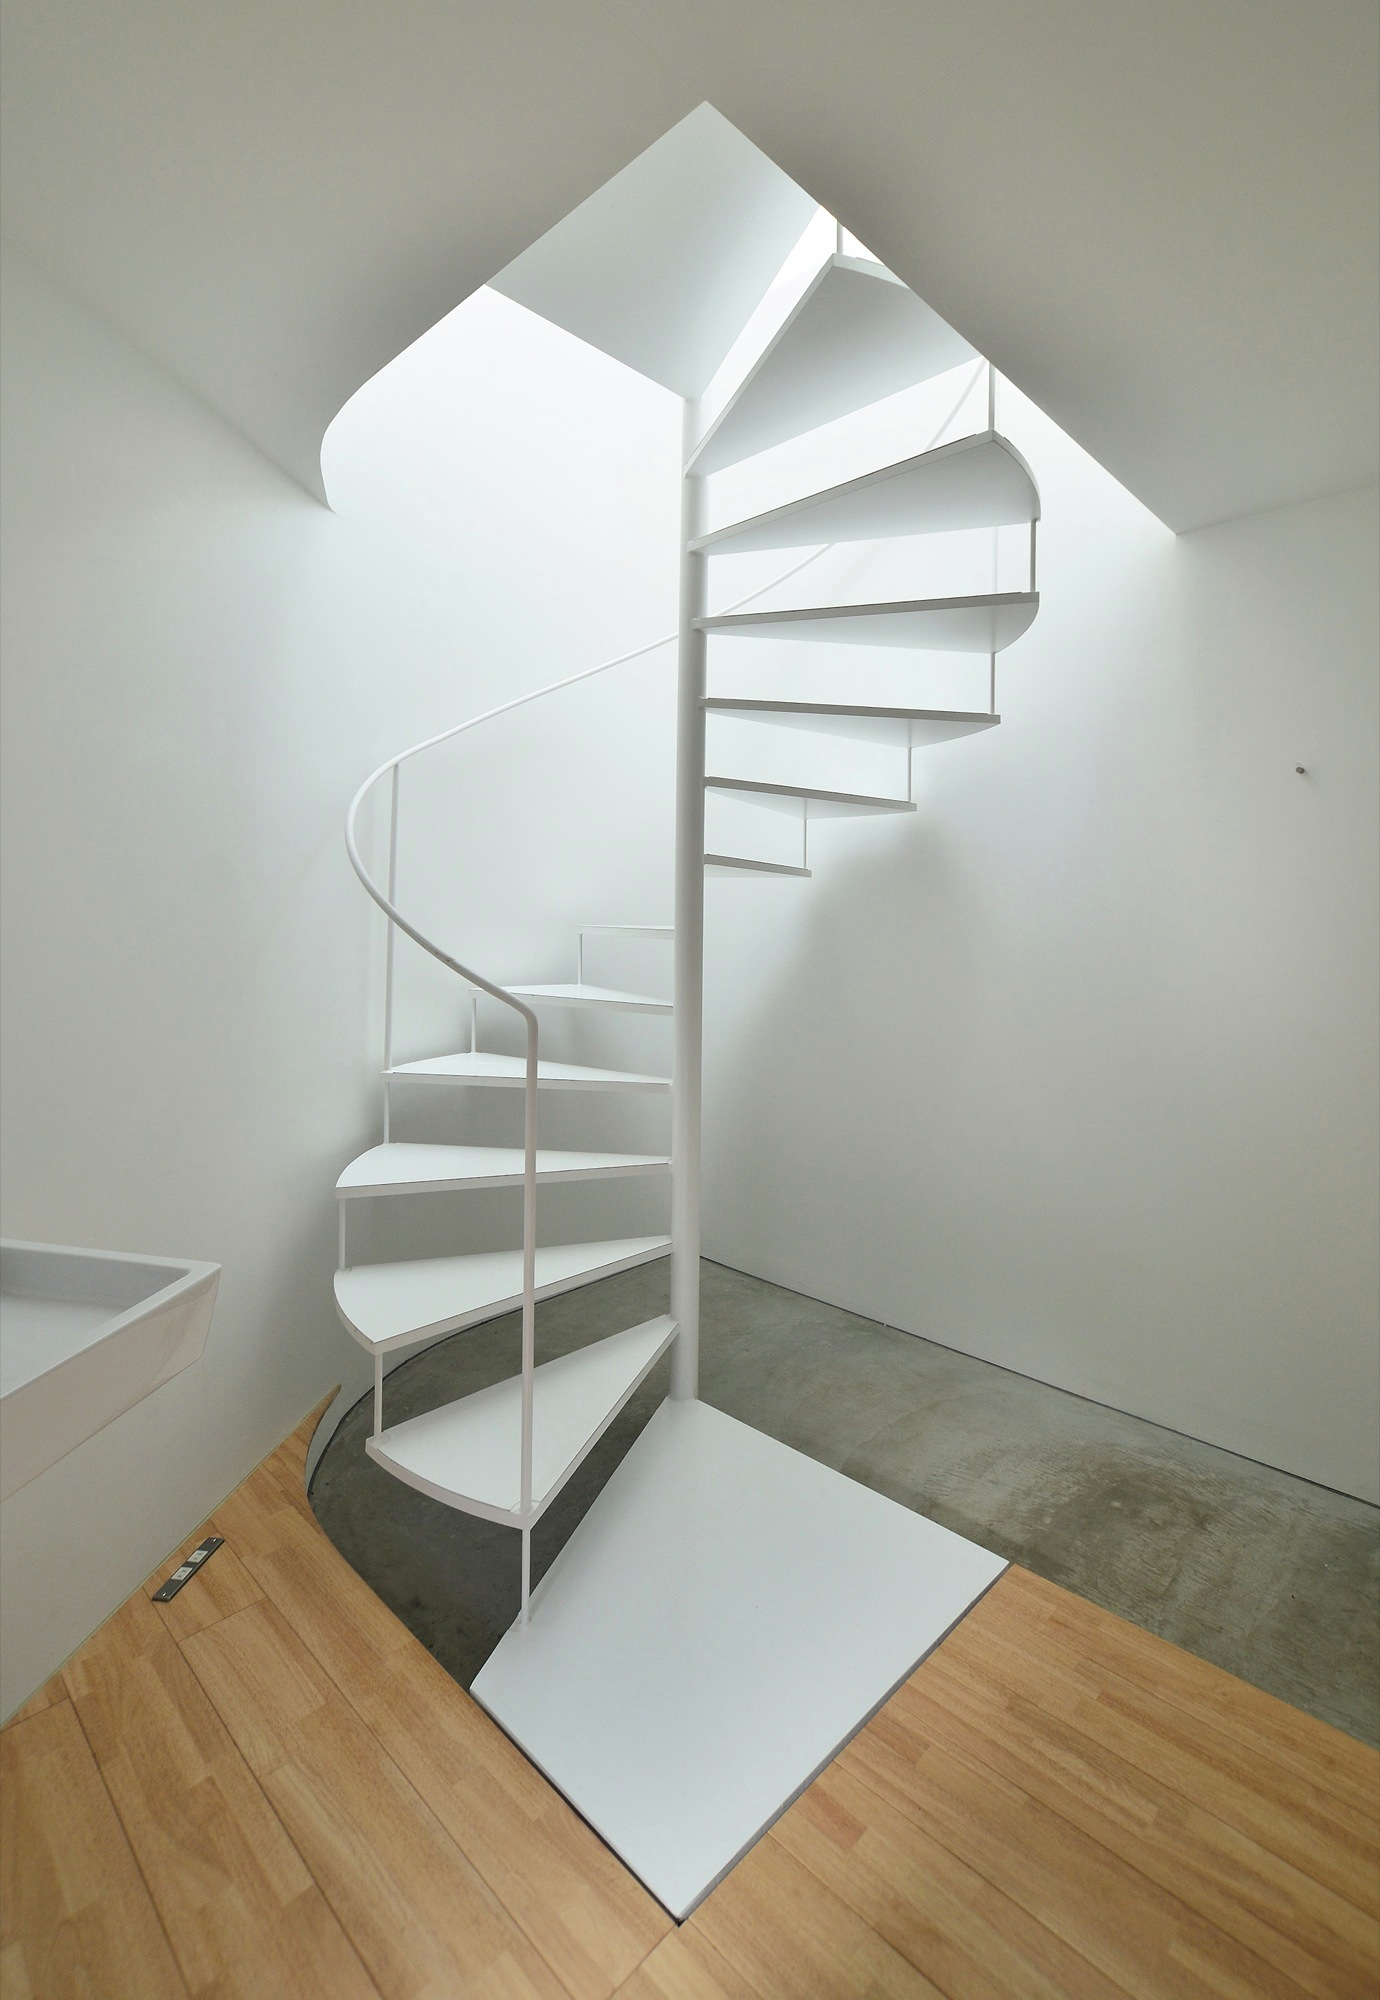 Spiral stair spirals and spiral staircases on pinterest for Square spiral staircase plans hall